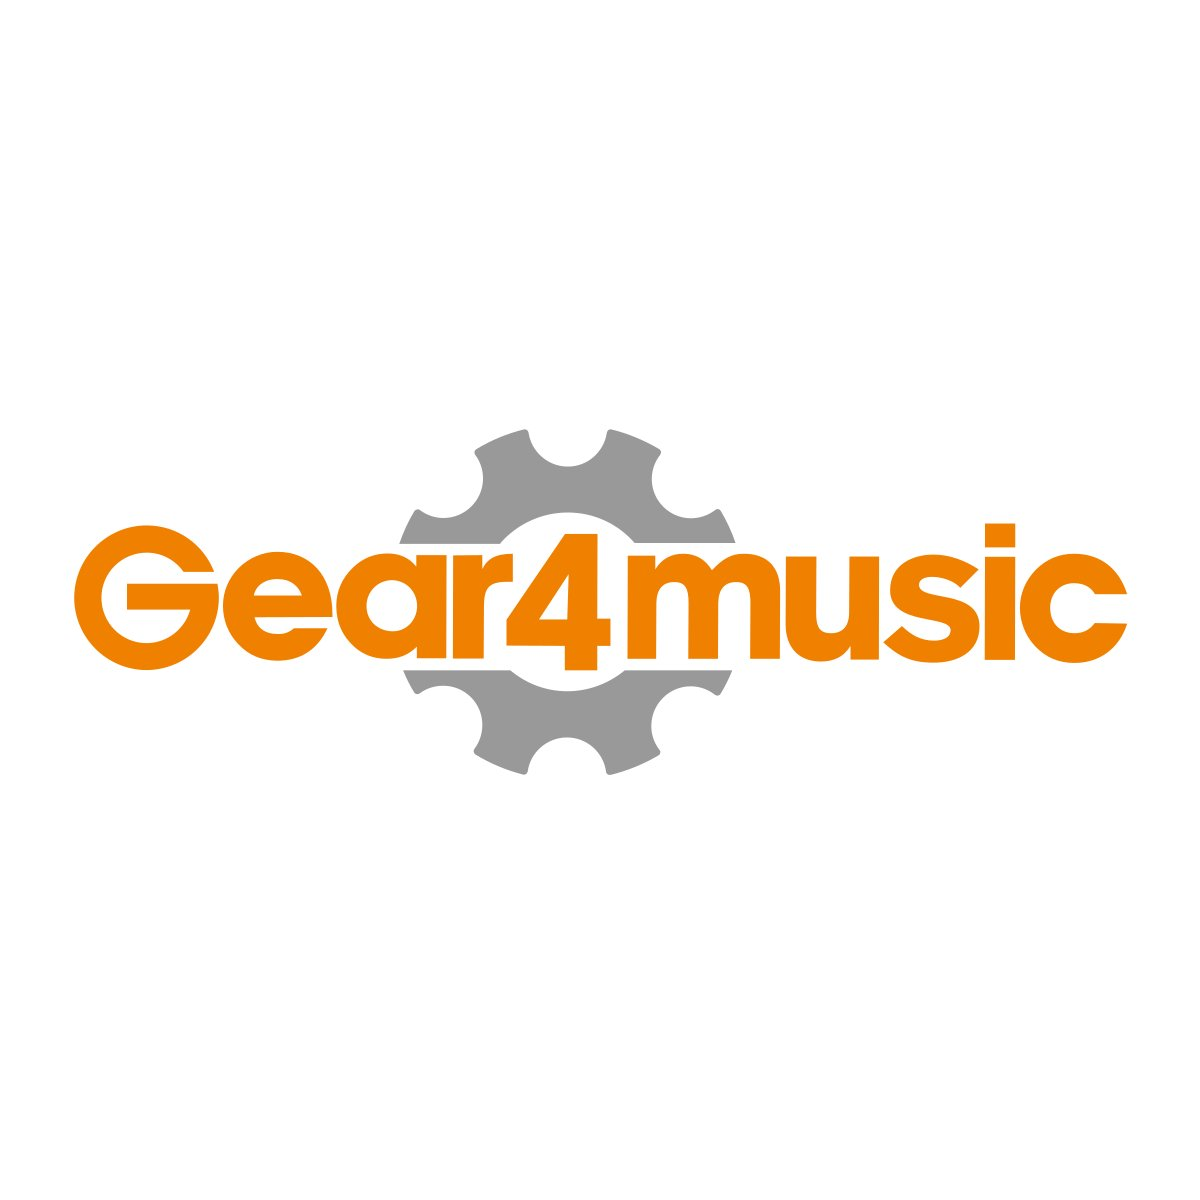 Student 4/4 viool van Gear4music, wit